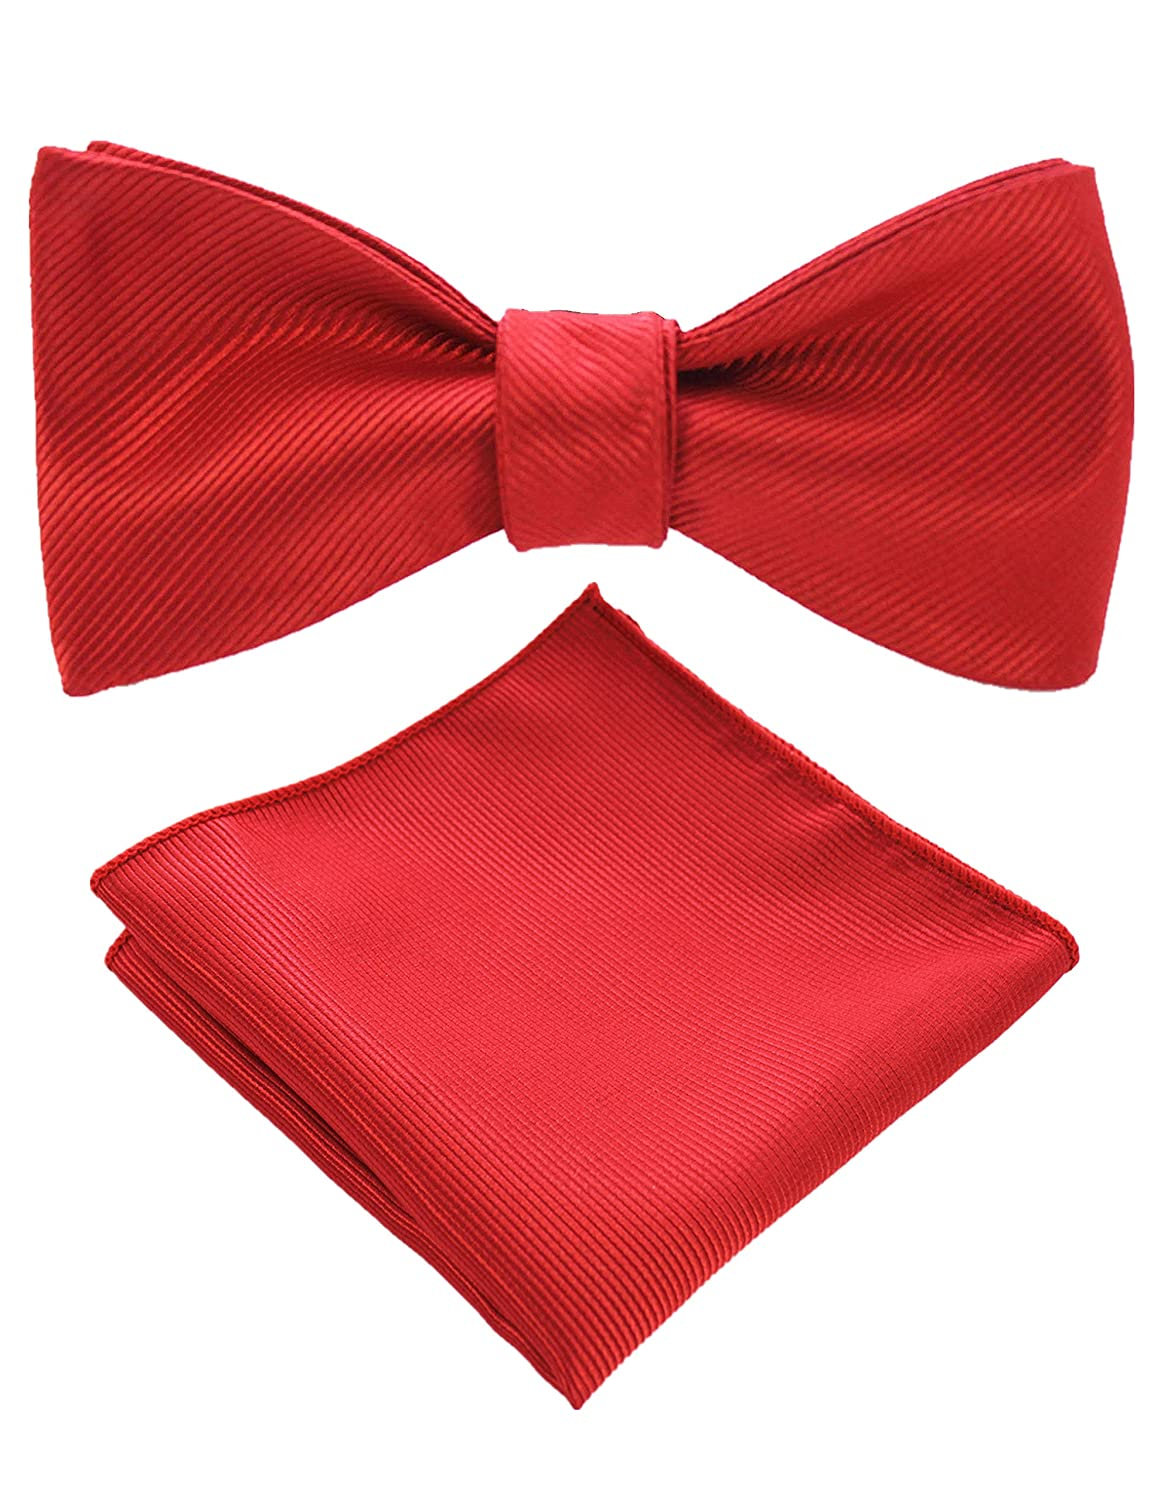 JEMYGINS Mens Formal Bowtie Solid Self Tie Bow Tie and Pocket Square Set (10 Colors)